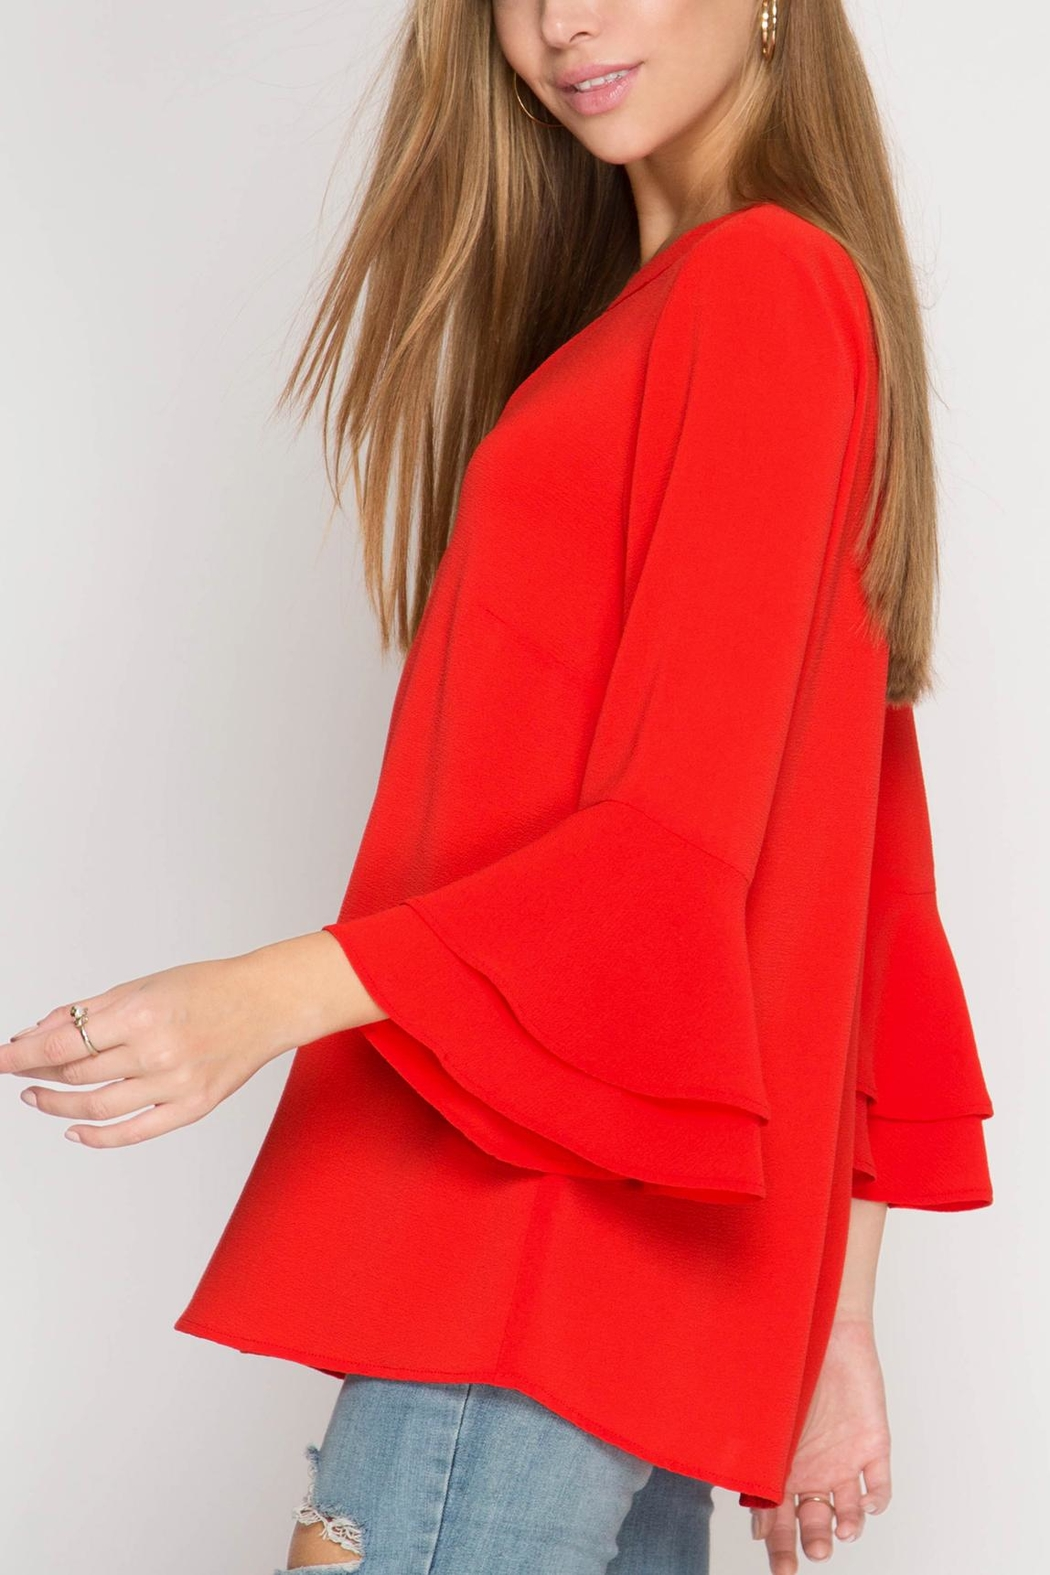 She + Sky Red Ruffle Blouse - Main Image